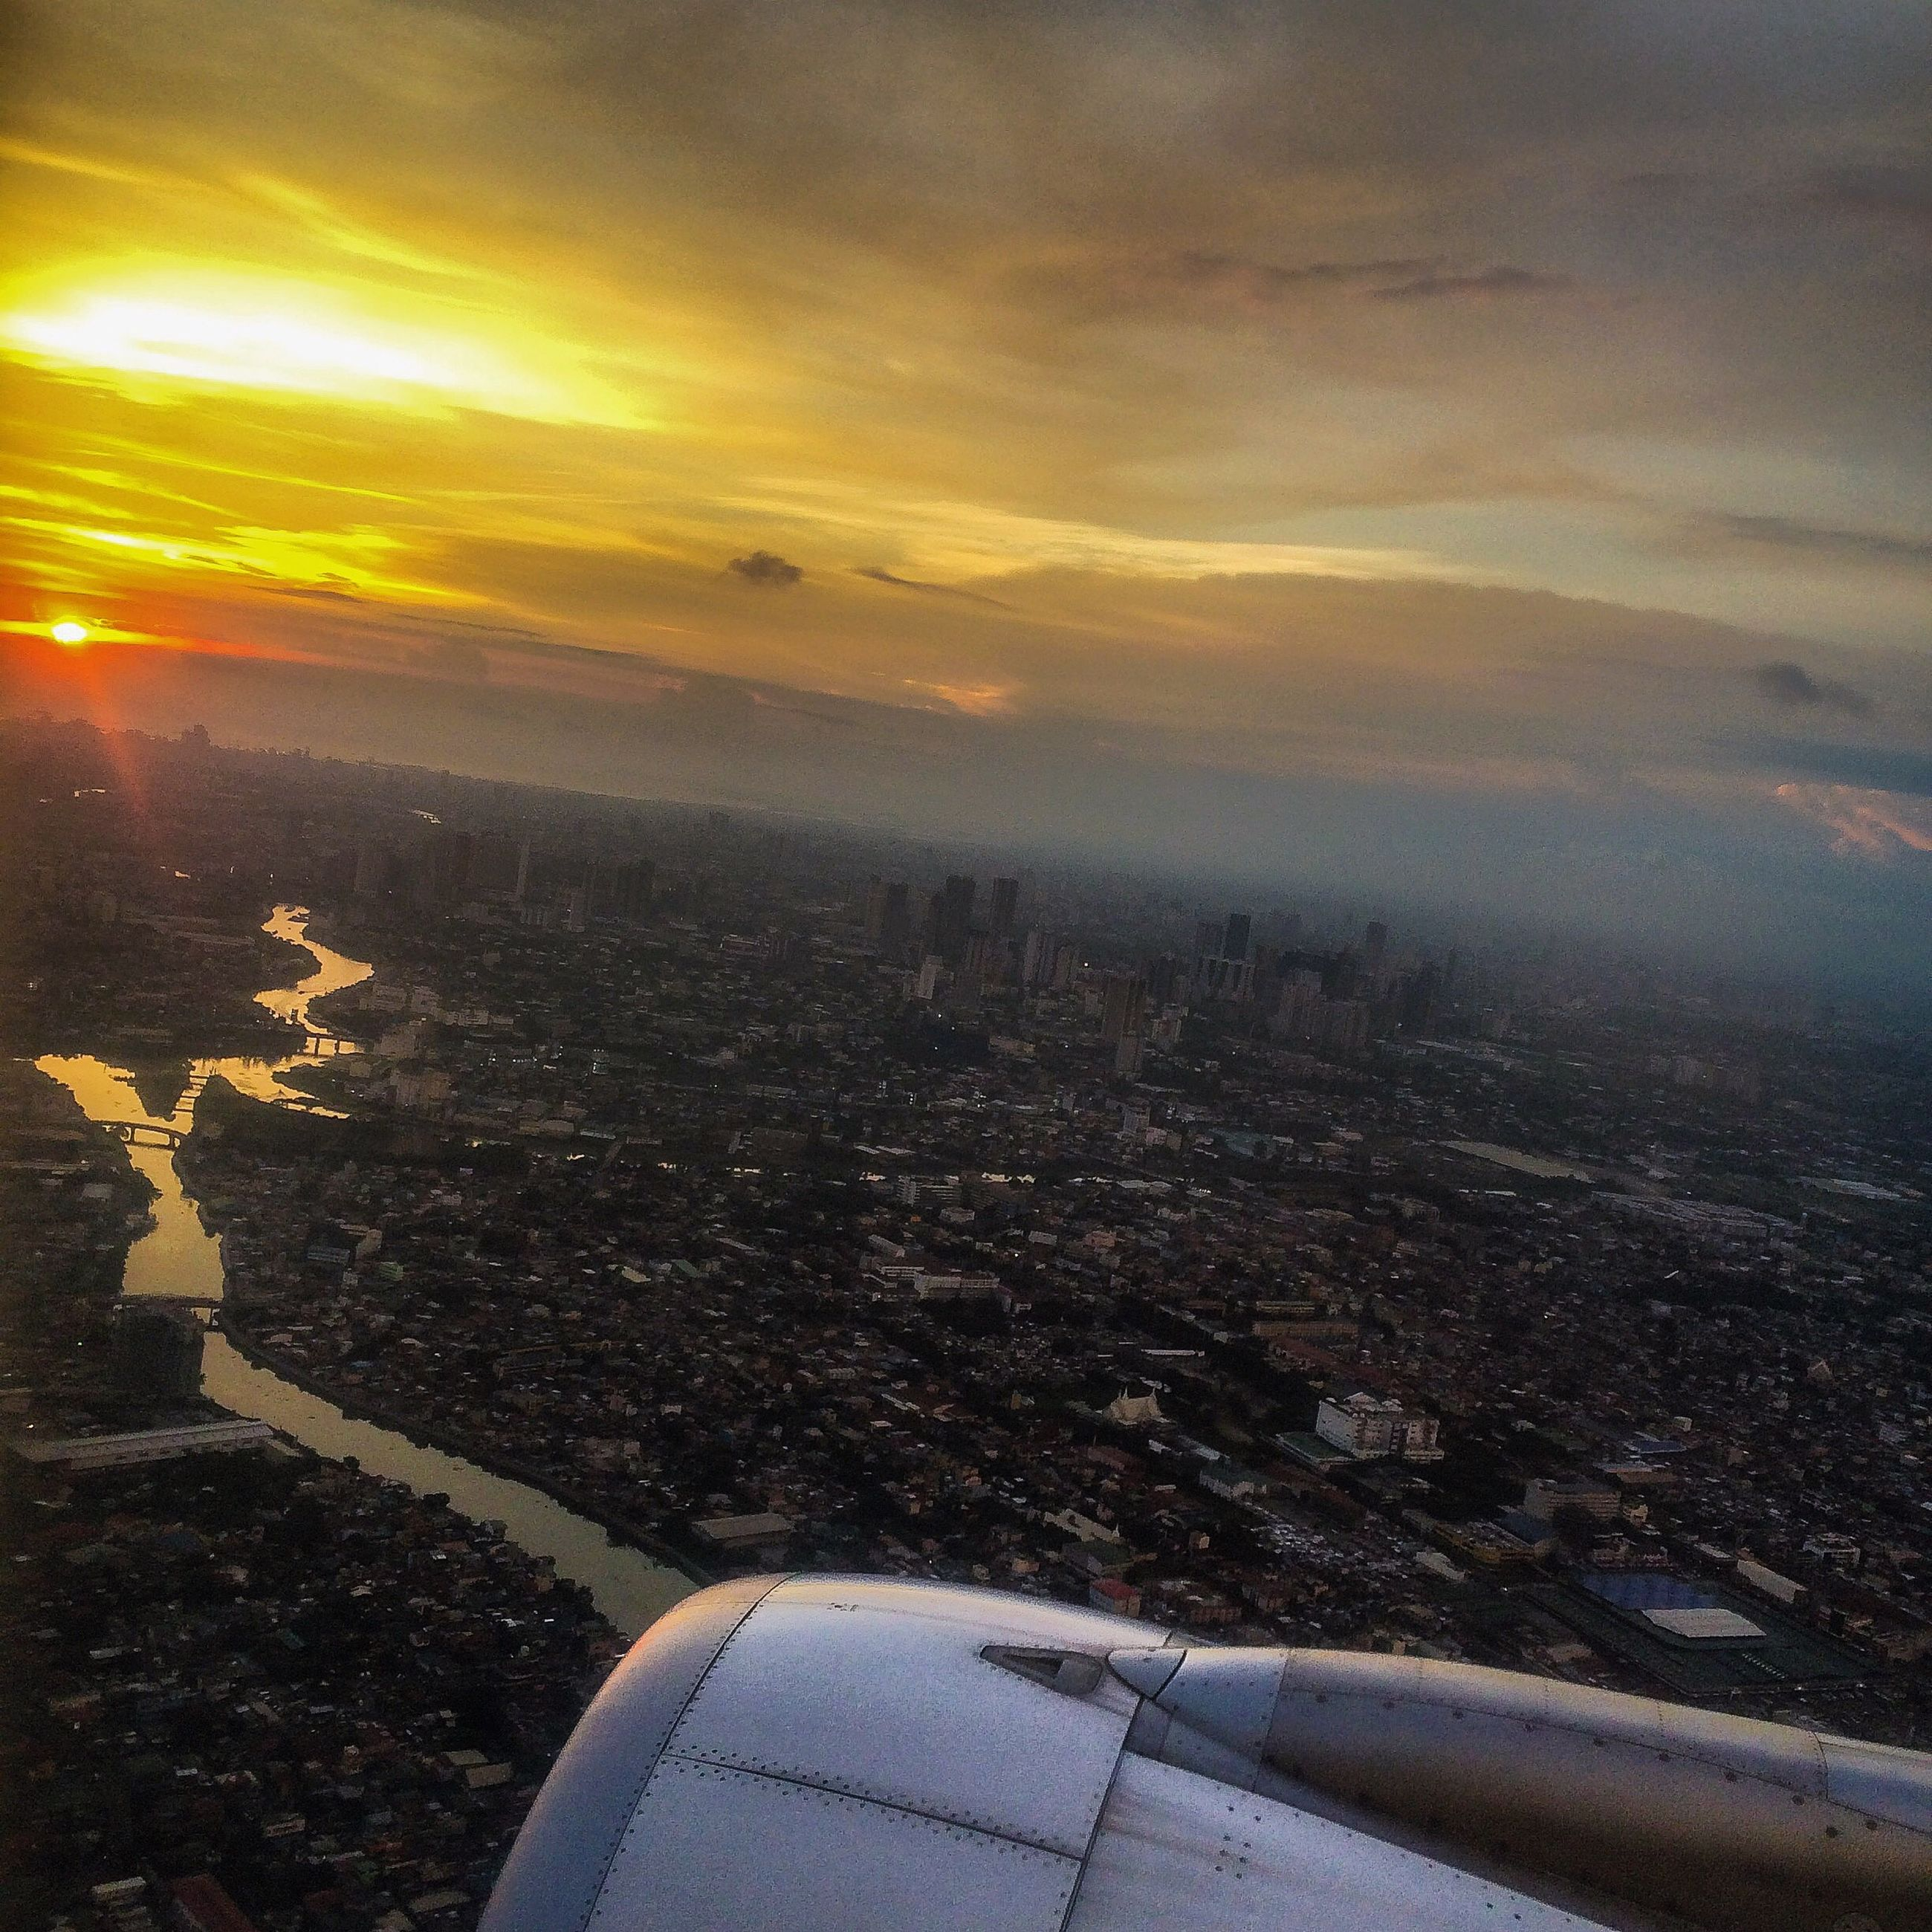 sunset, sky, transportation, airplane, aerial view, sun, air vehicle, mode of transport, cloud - sky, landscape, part of, sunbeam, cityscape, aircraft wing, sunlight, flying, city, cropped, scenics, travel